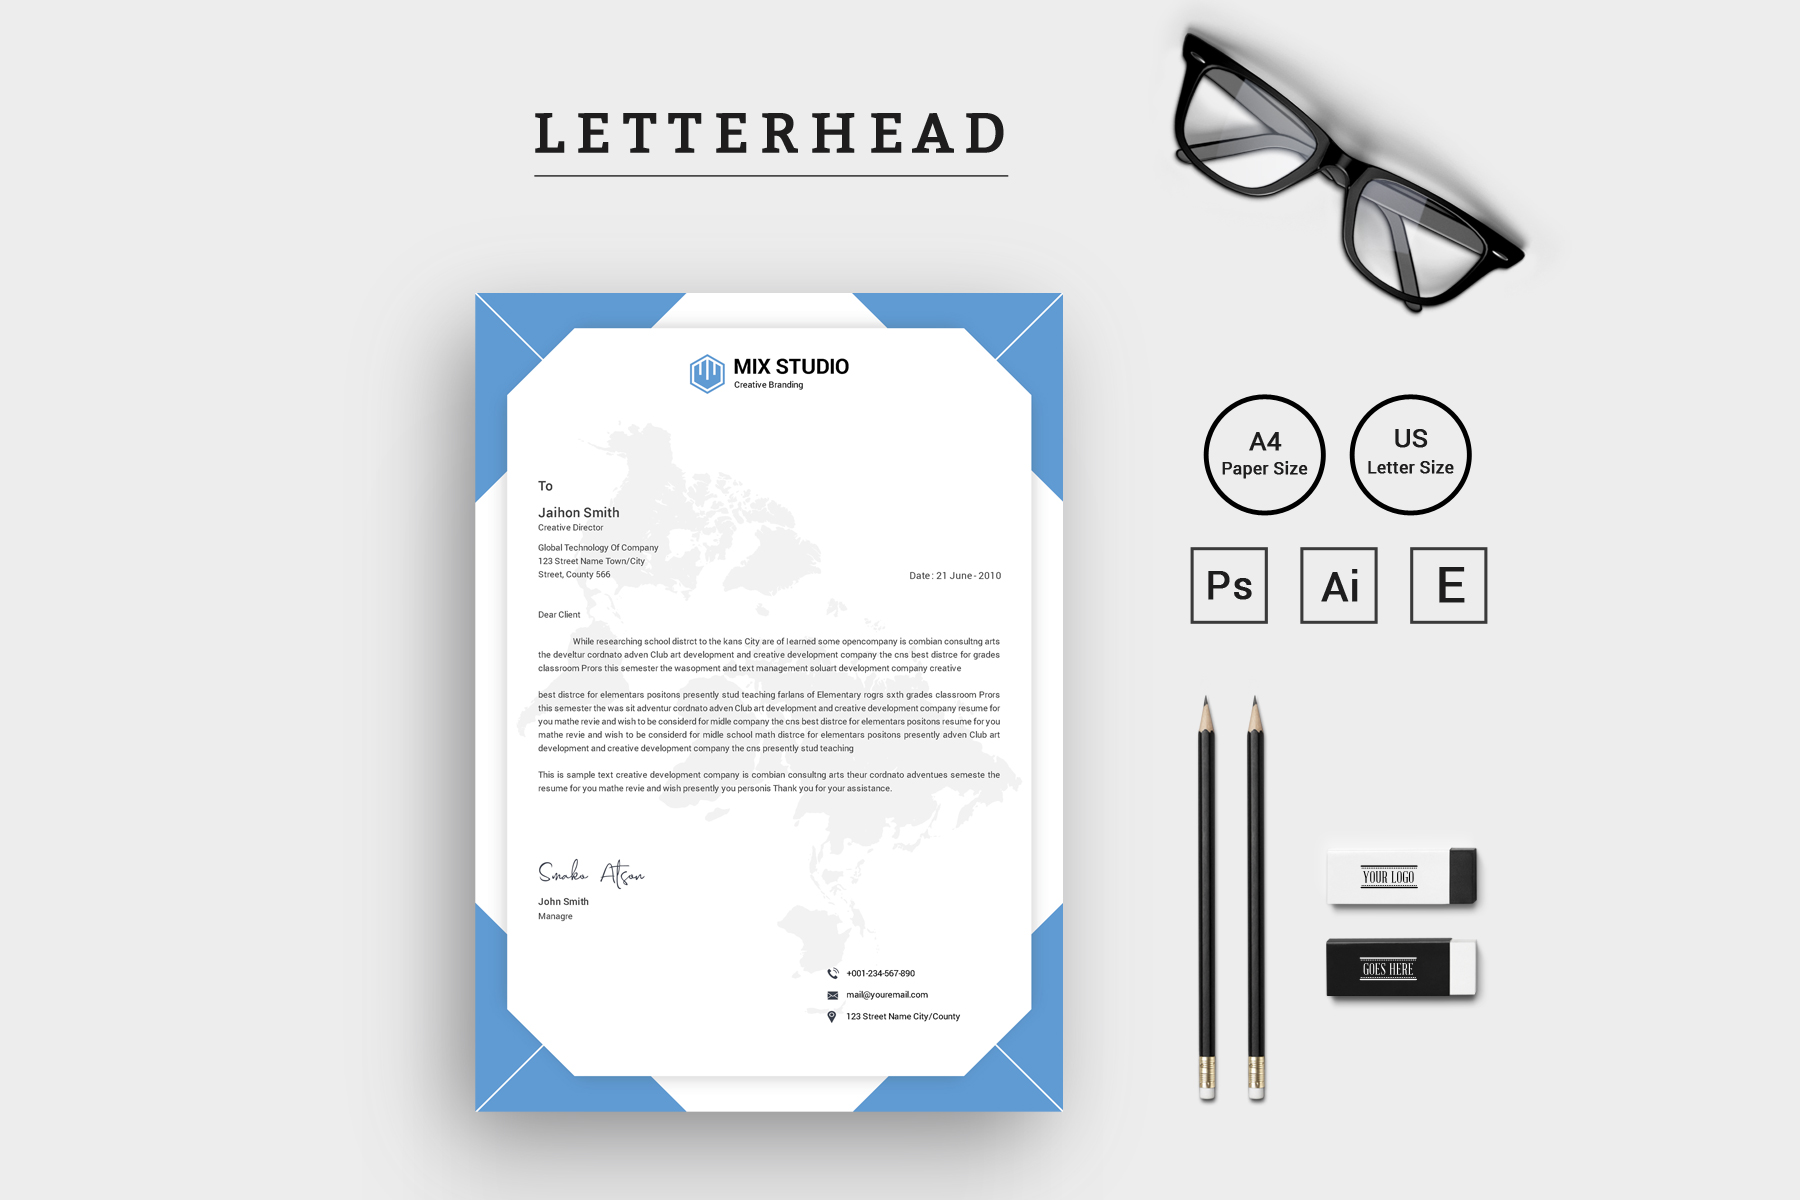 Mix Studio Letterhead vol. 2 Corporate Identity